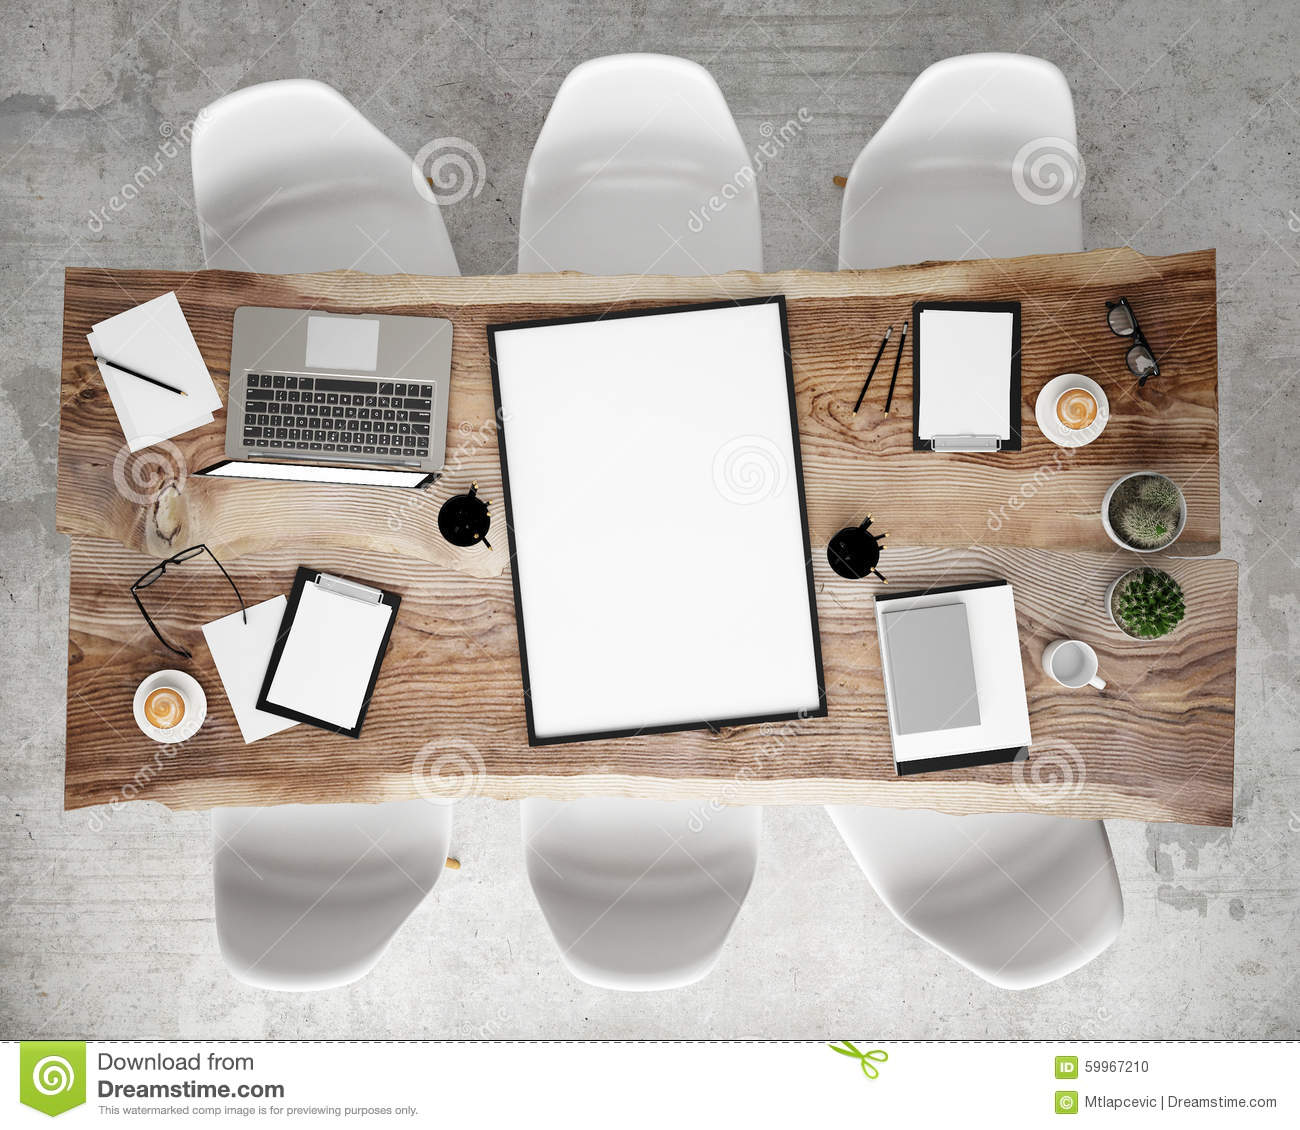 mock up poster frame on meeting conference table with office accessories and laptop computers hipster